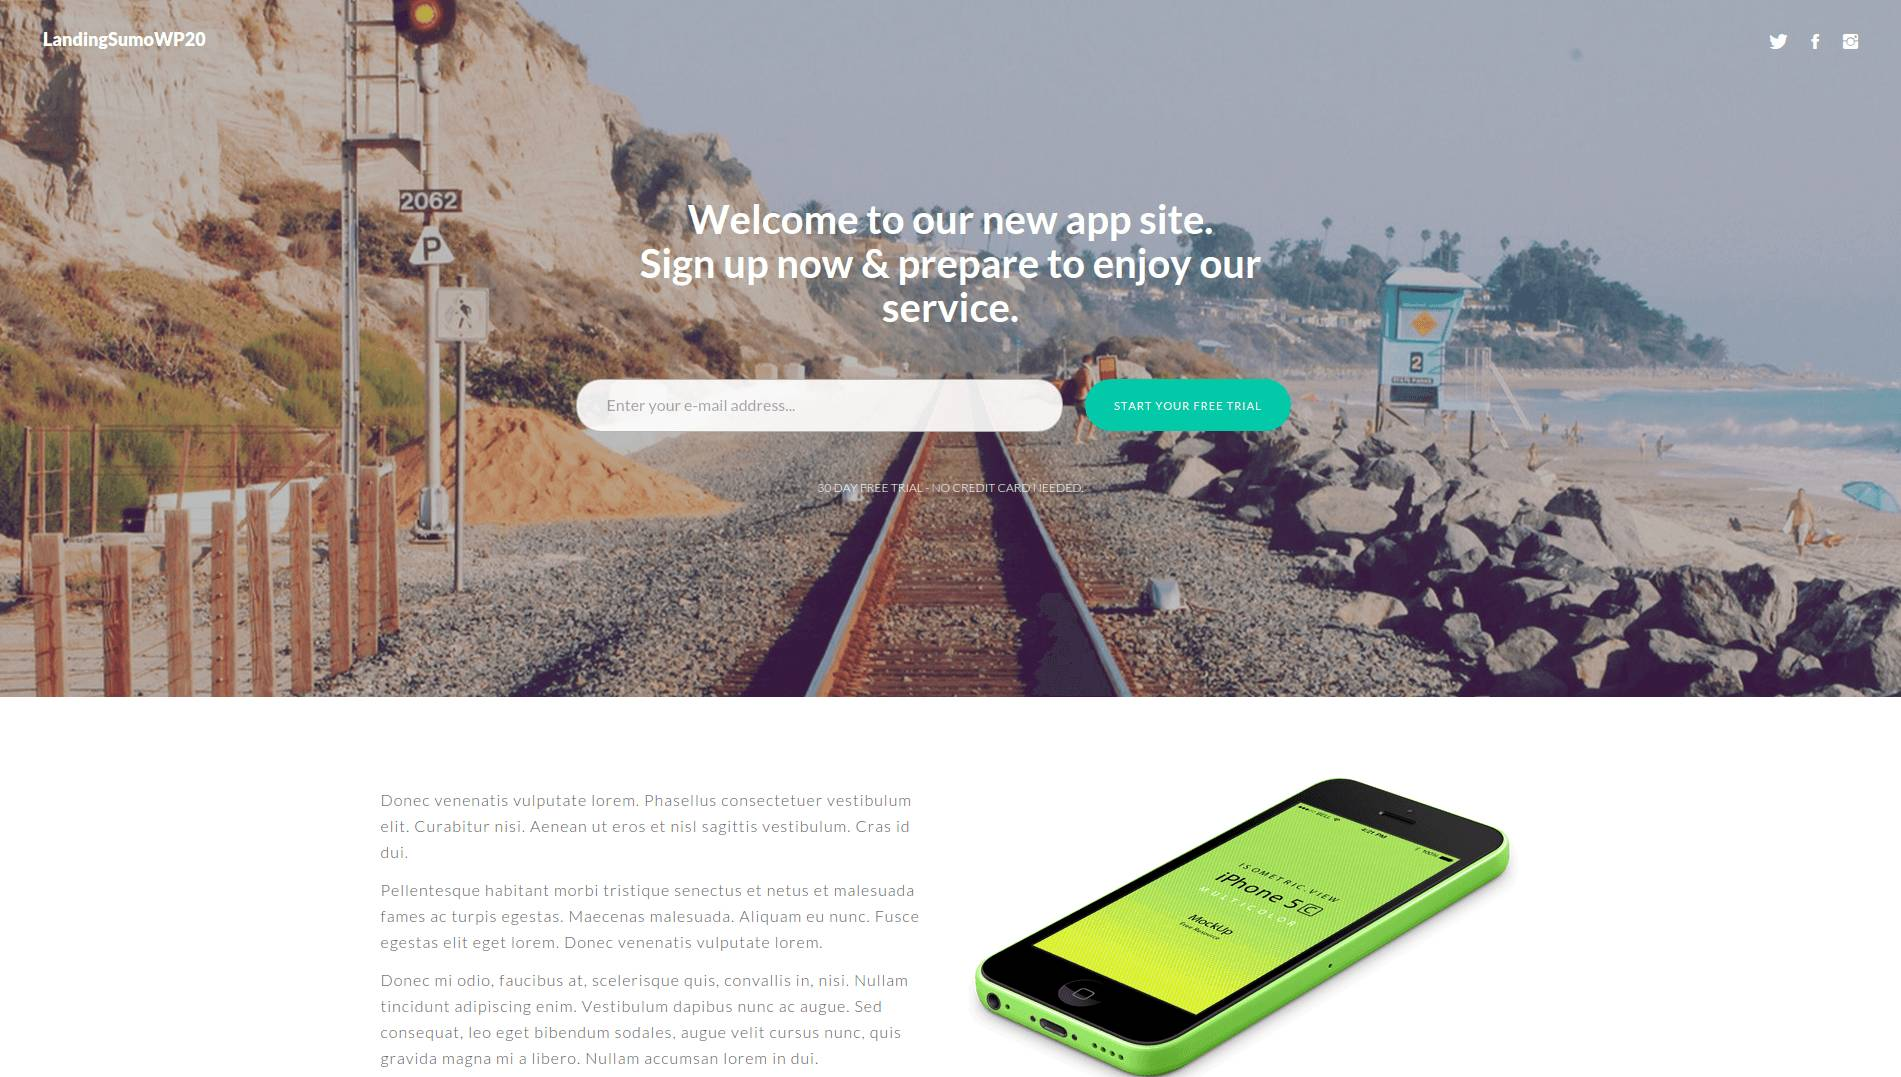 theme-wordpress-founder-LandingSumoWP20